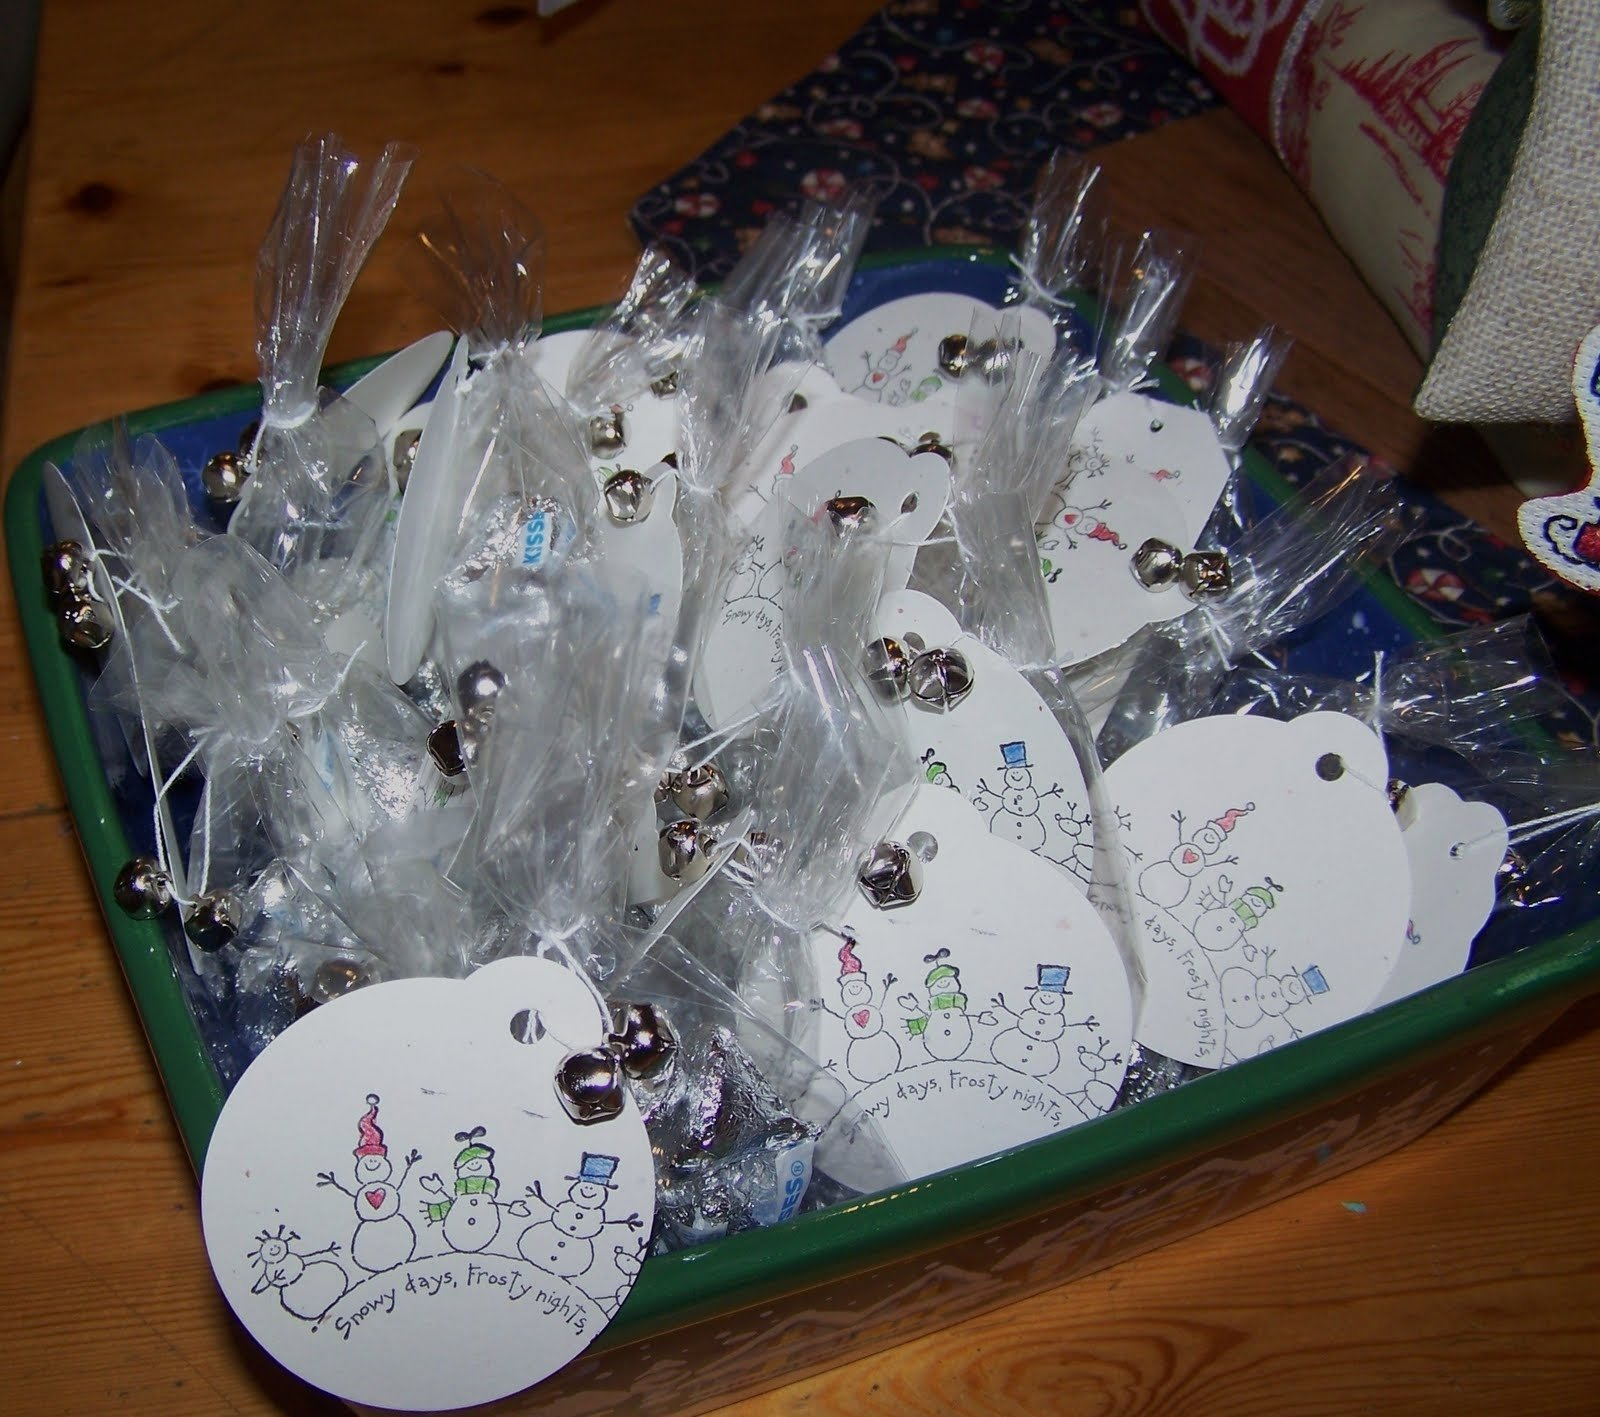 10 Nice Small Gift Ideas For Coworkers cross stitch inspirationcindy derosa christmas goodie bags